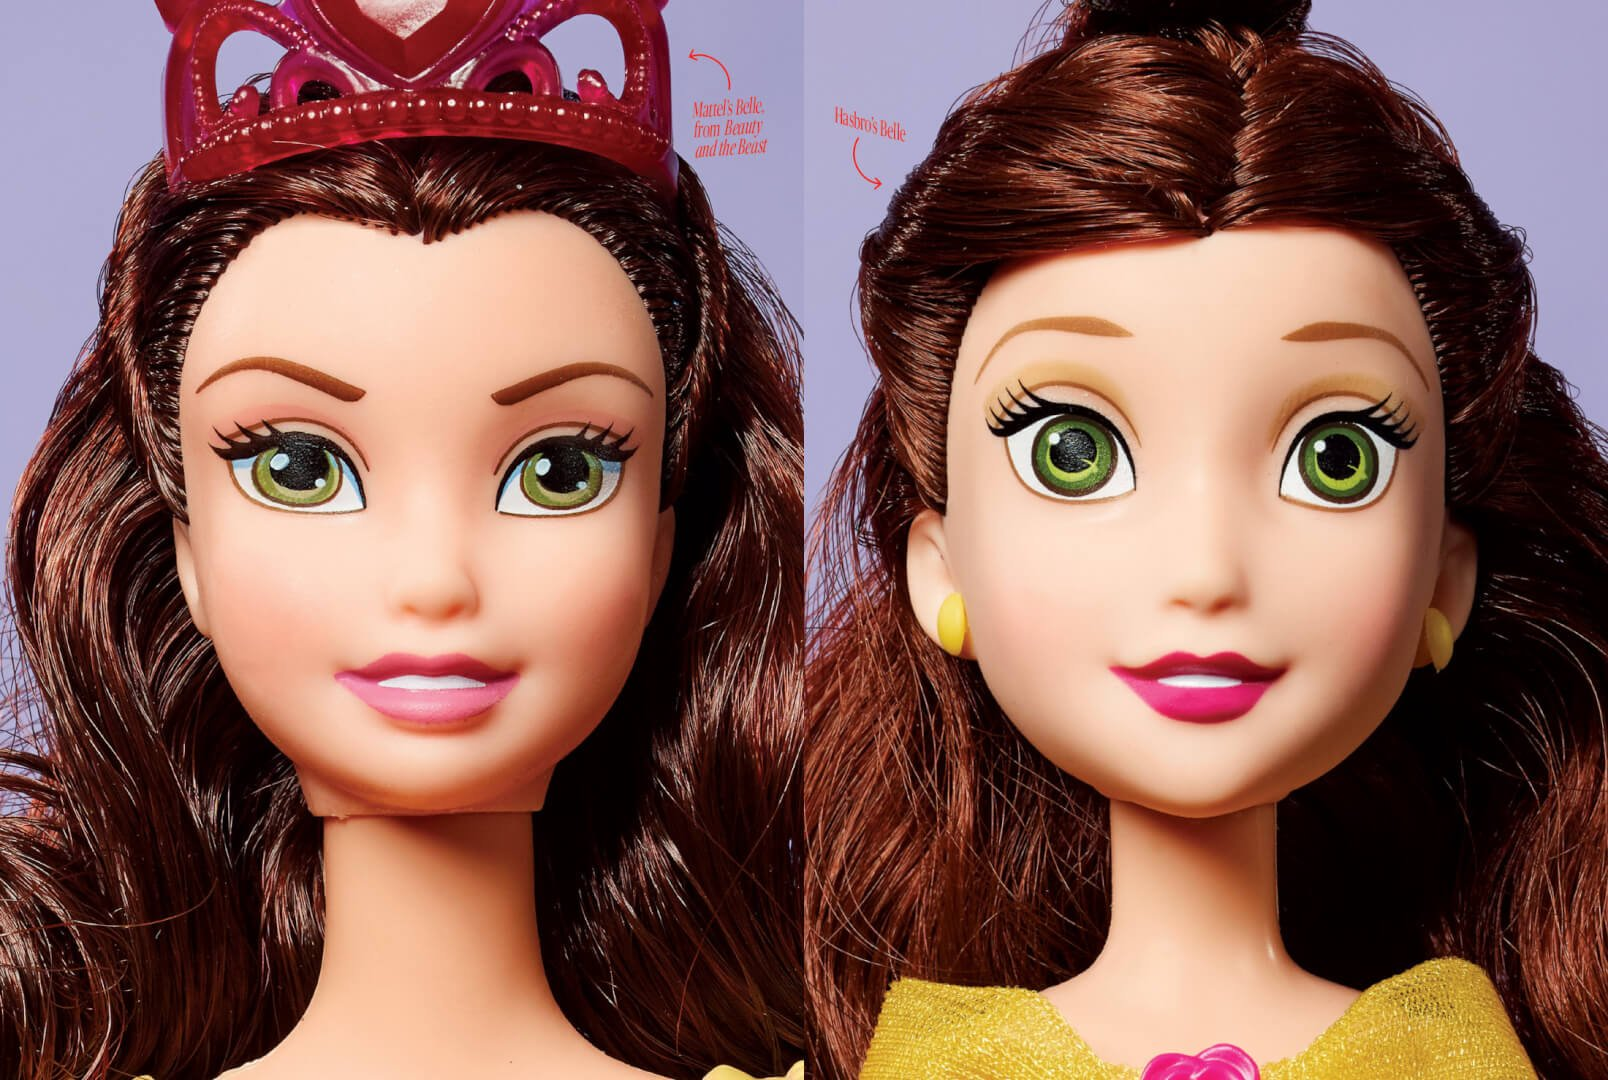 Hasbro S Takeover Of The 500 Million Disney Princess Doll